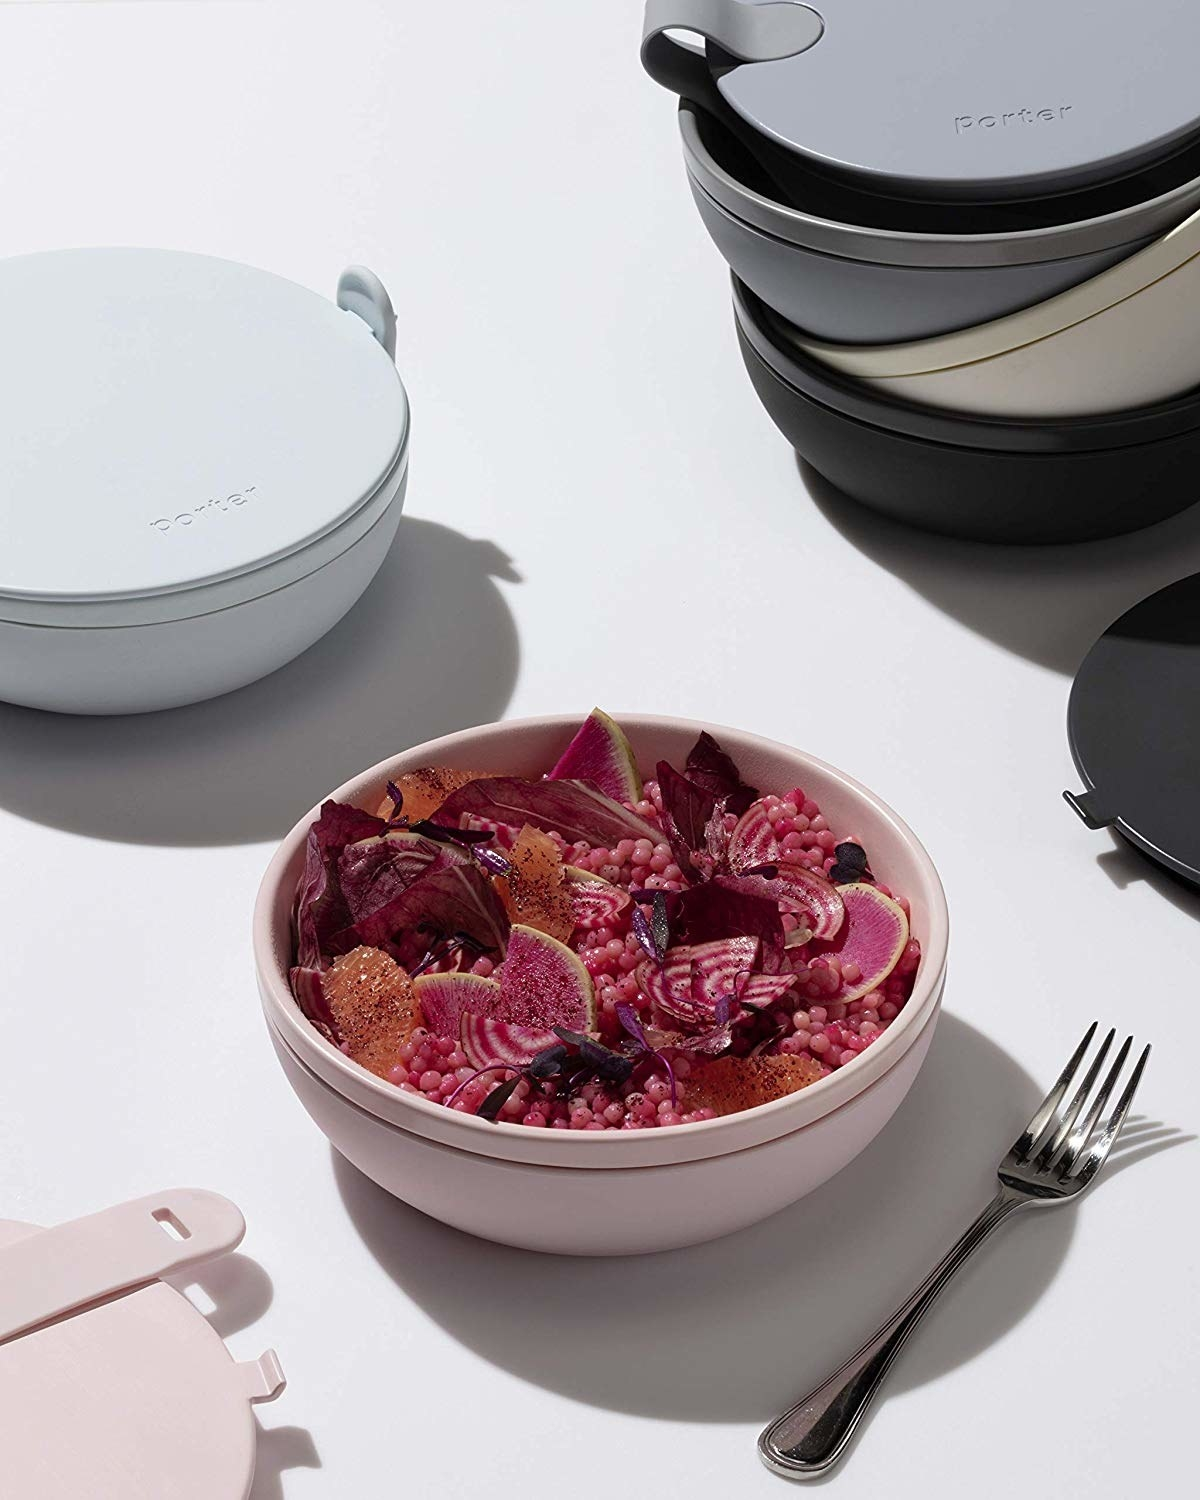 round pink bowl with a lid next to it and a silicone strap across the top